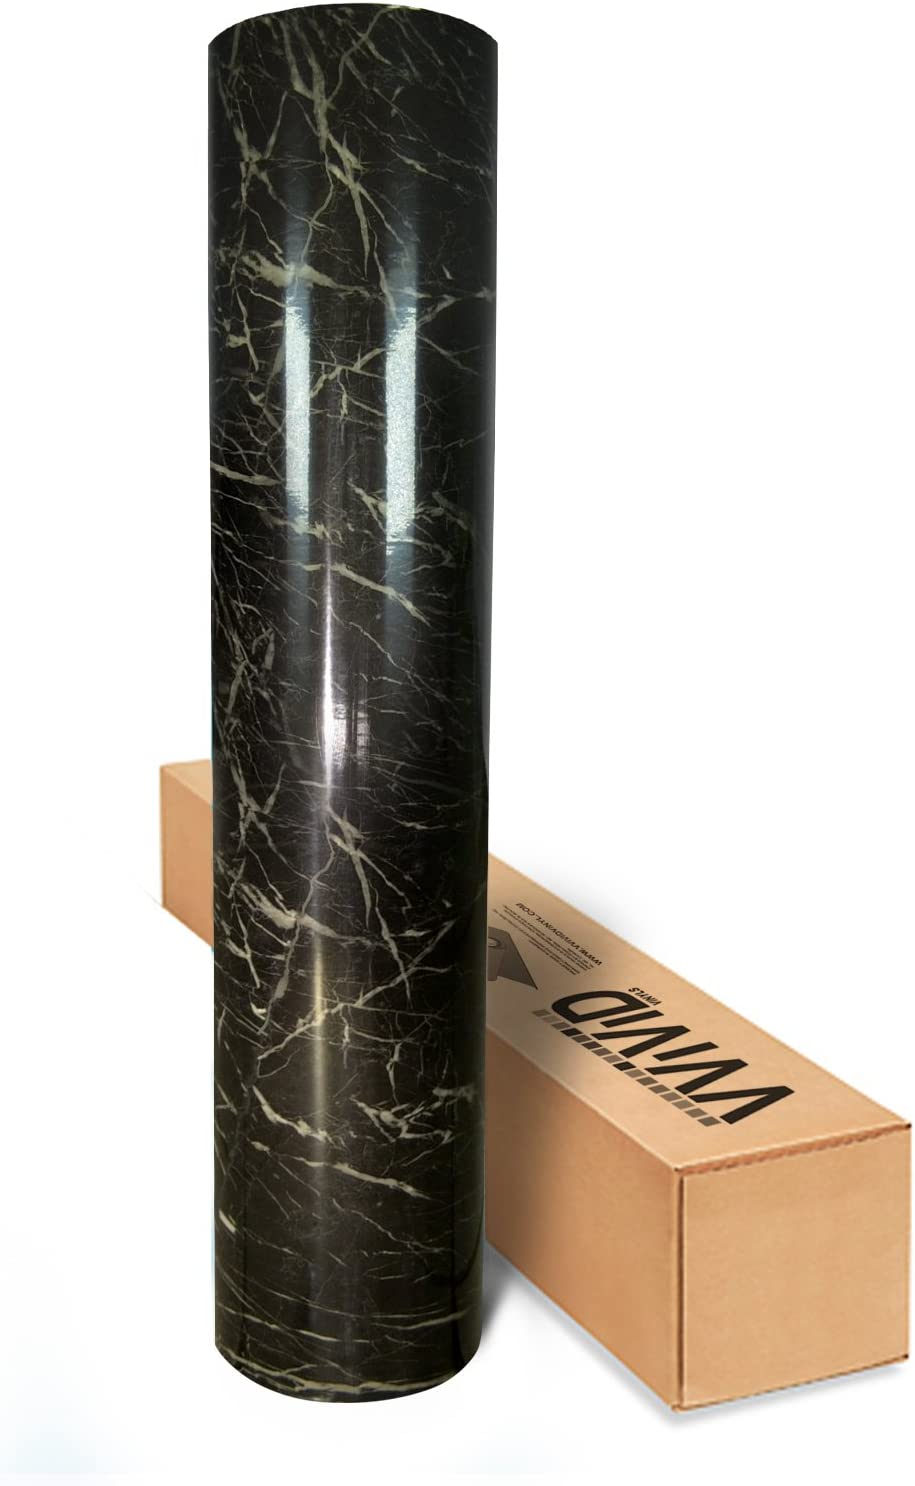 1 Roll Pack VViViD High Gloss Realistic Finish Black Marble White Veined Architectural Vinyl Wrap 16 inches x 78 inches Roll